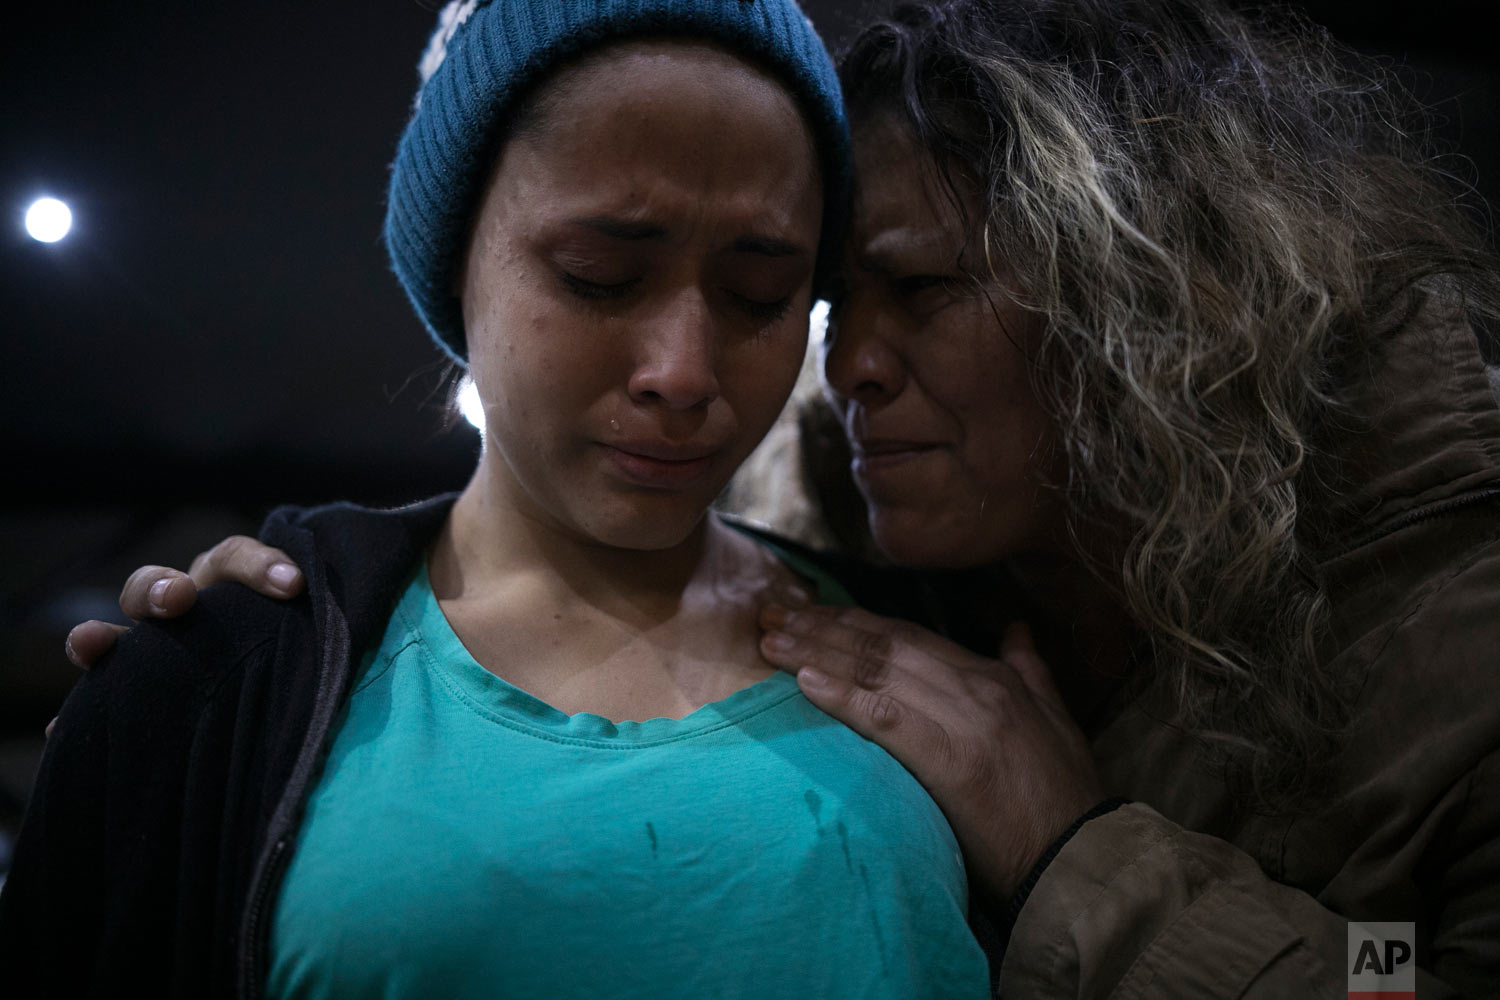 Pregnant 15-year-old El Salvador migrant Milagro de Jesus Henriquez Ayala, is comforted by a local church member as she cries during a Christian religious service at the Agape World Mission shelter in Tijuana, Mexico, Feb. 8, 2010. (AP Photo/Emilio Espejel)